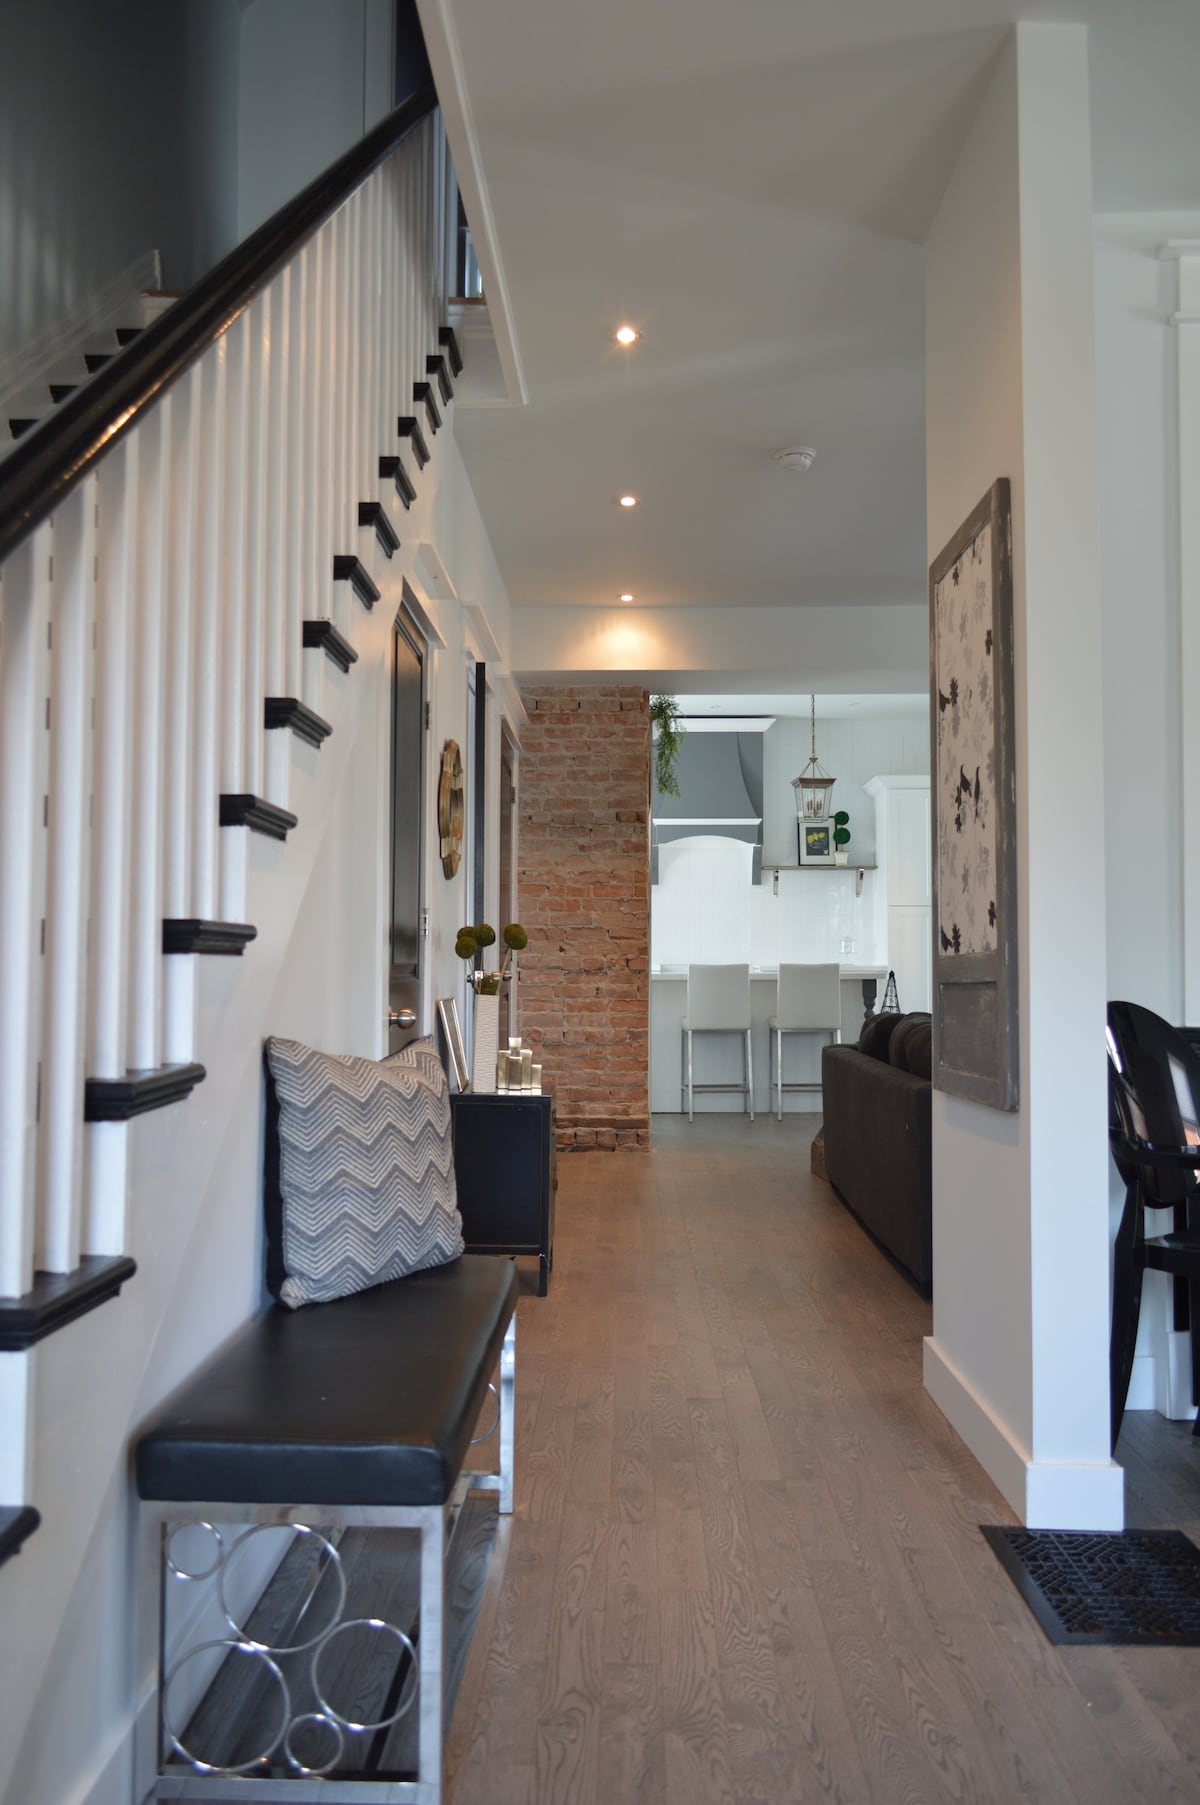 FULLY RENOVATED HOME BY THE MARKET